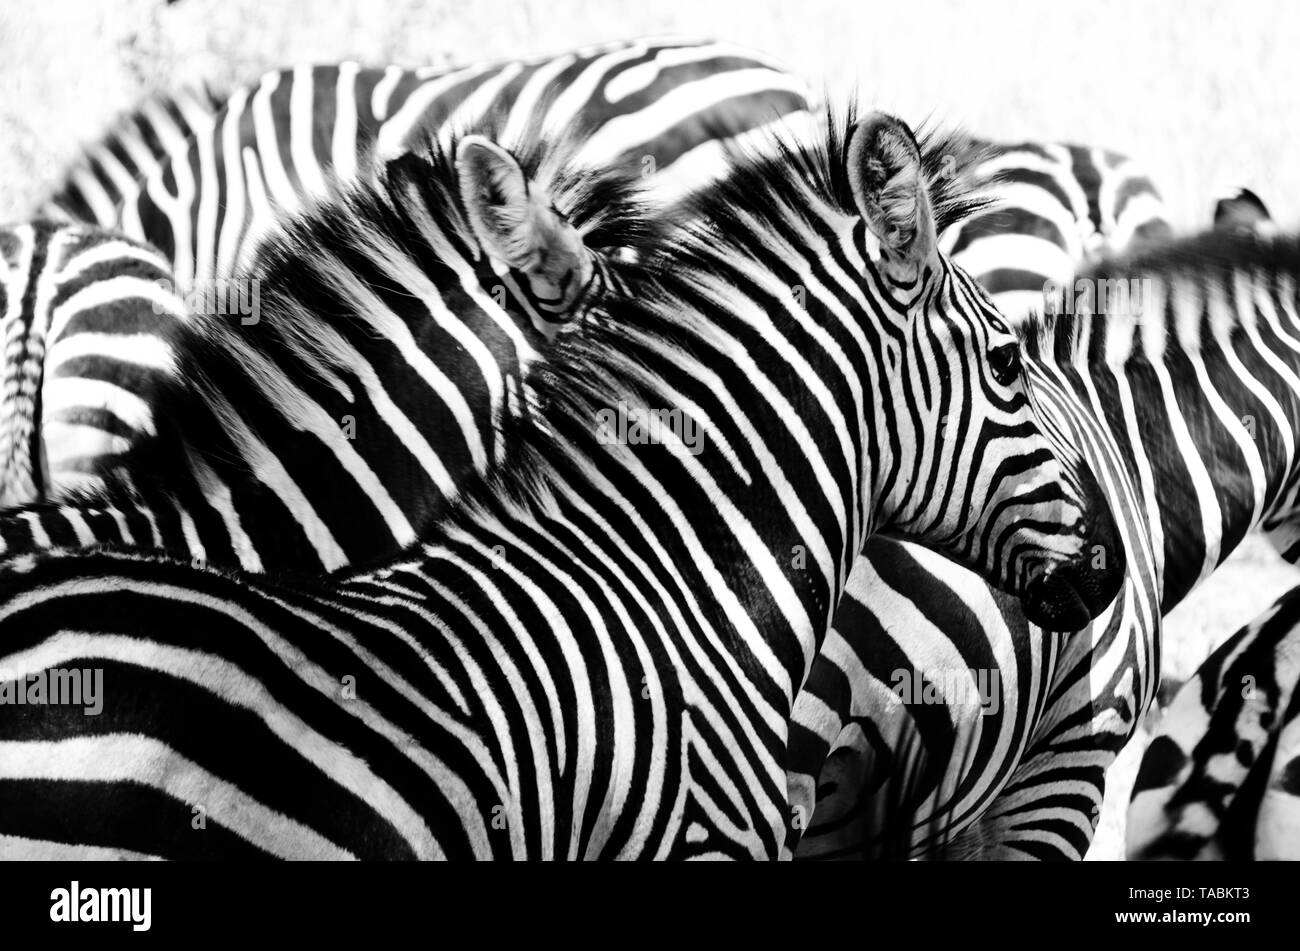 A black and white herd of zebra blend together in an optical illusion stock image